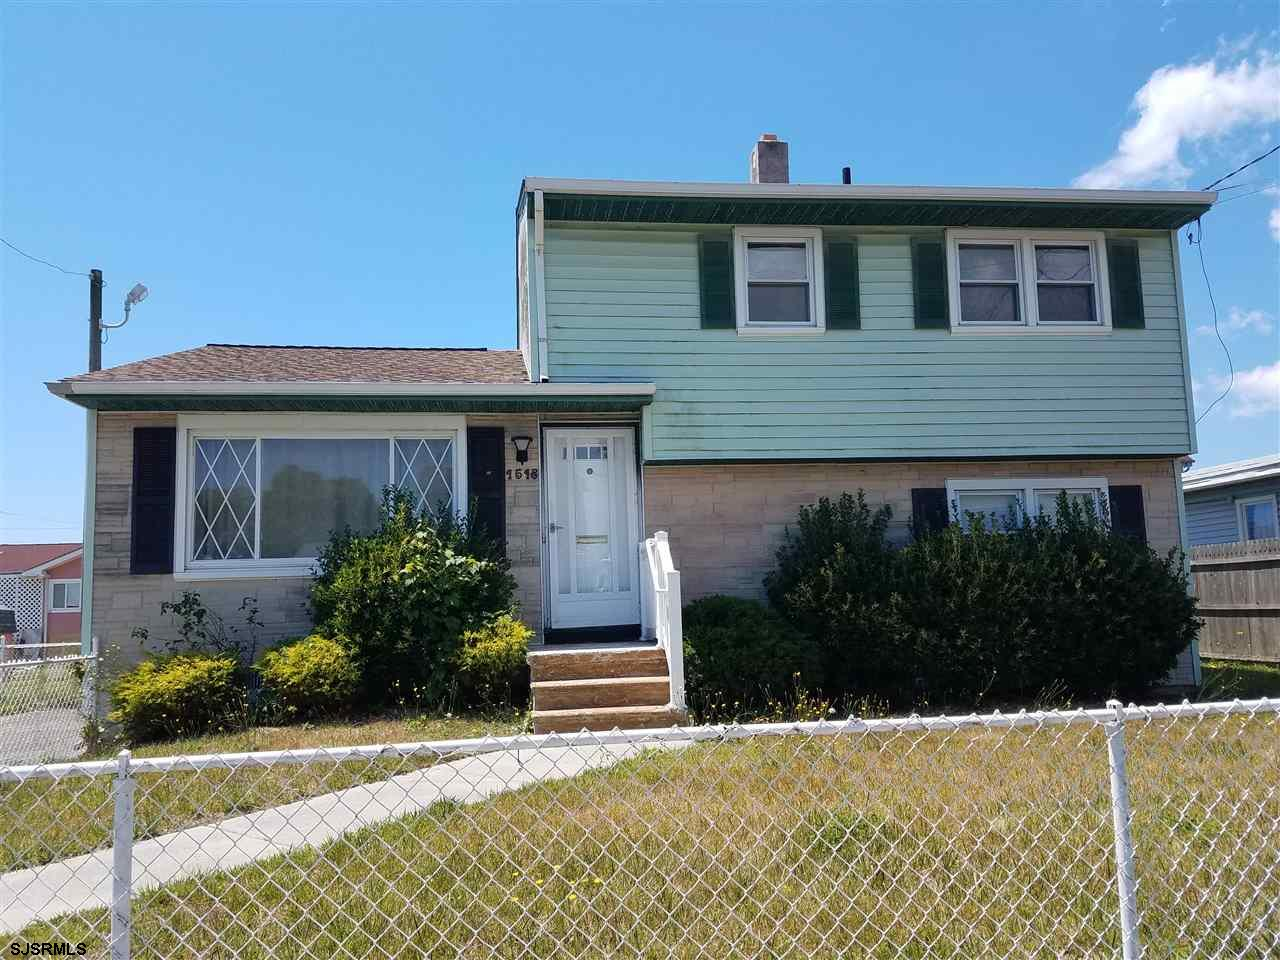 Totally Renovated 3 Bedrooms 1 and half bathroom possibly a 4th bedroom or a separate home office in